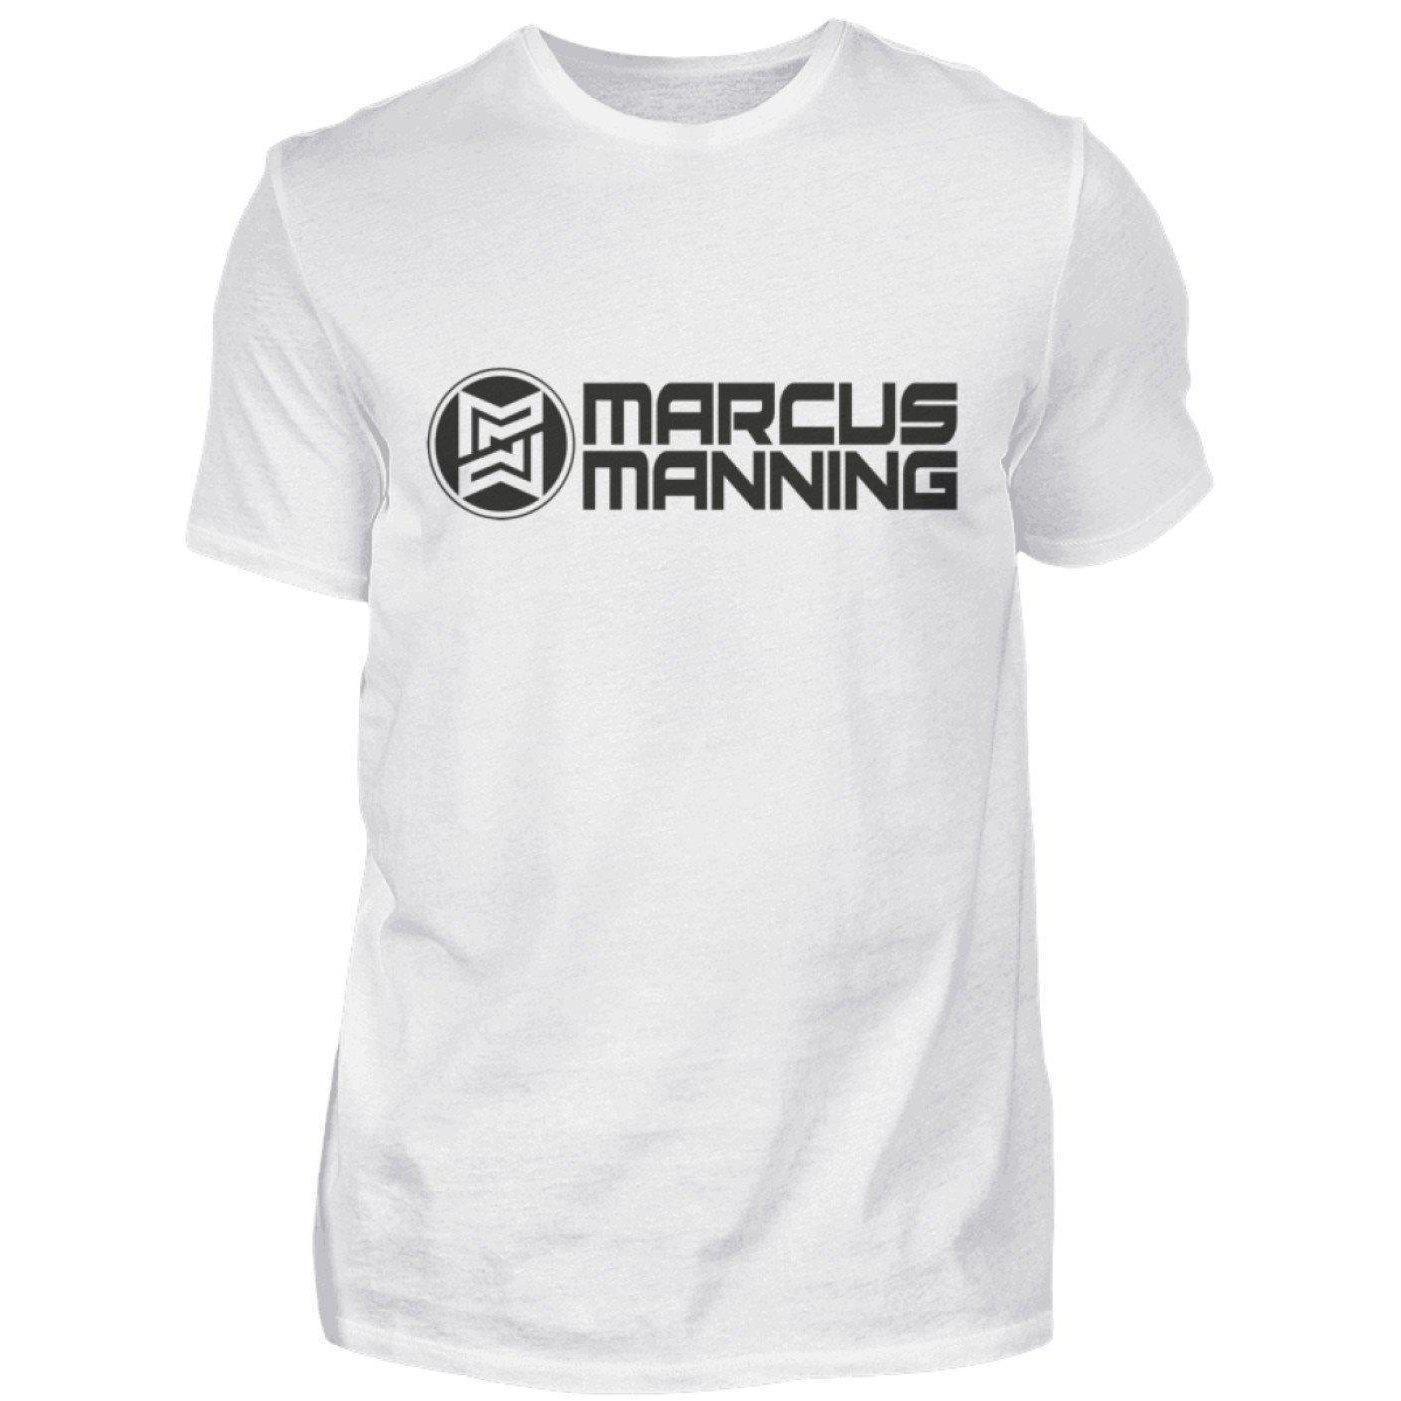 Marcus Manning Light Collection - Men's Shirt Men's Basic T-Shirt White / S - Rave On!® the club & techno scene shop for cool young fashion streetwear style & fashion outfits + sexy festival 420 stuff